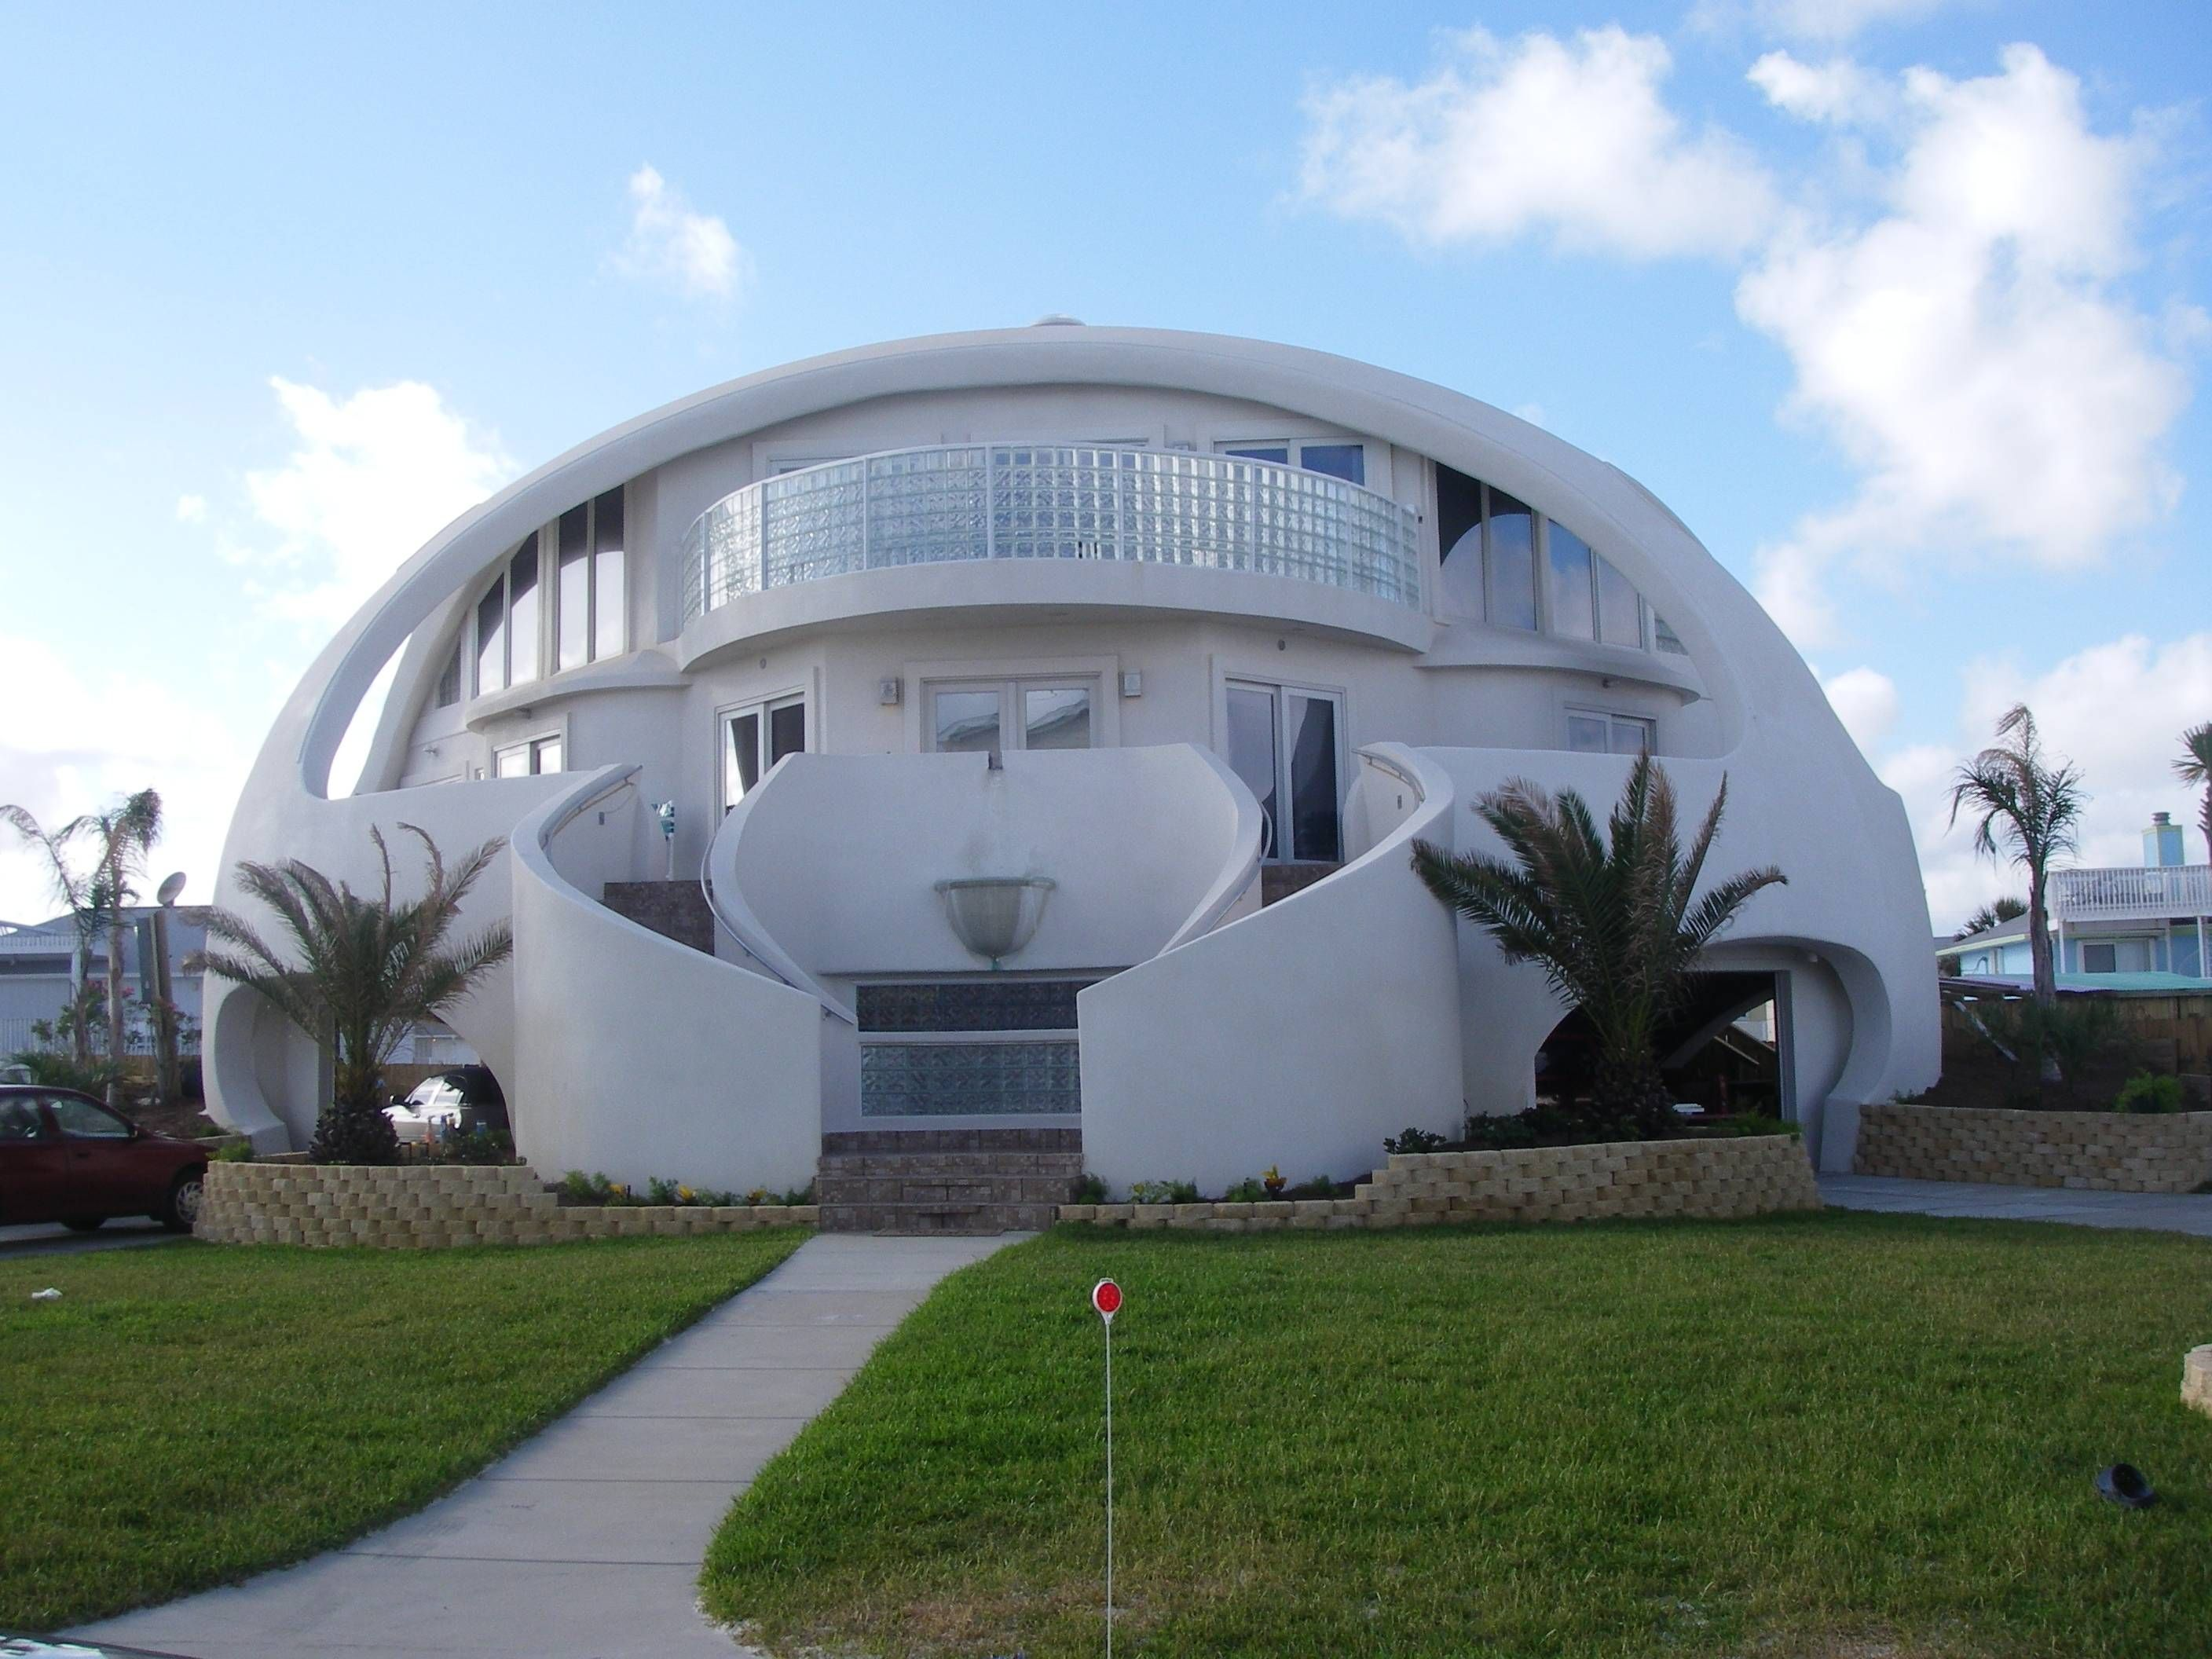 Hurricane Proof Home In Florida Online Architecture Unusual Homes Dome Home